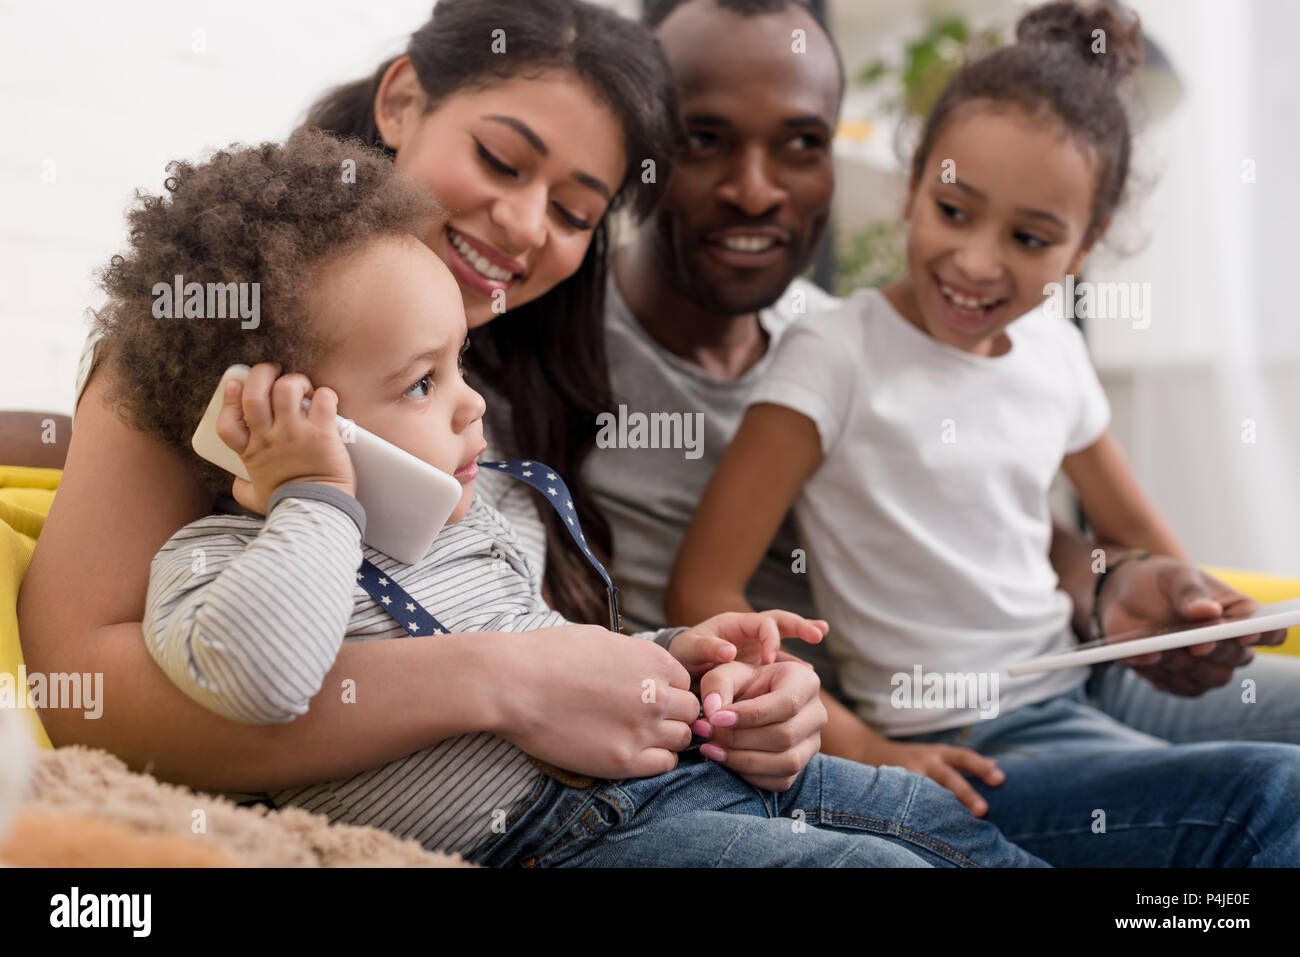 happy young family spending time together with devices - Stock Image